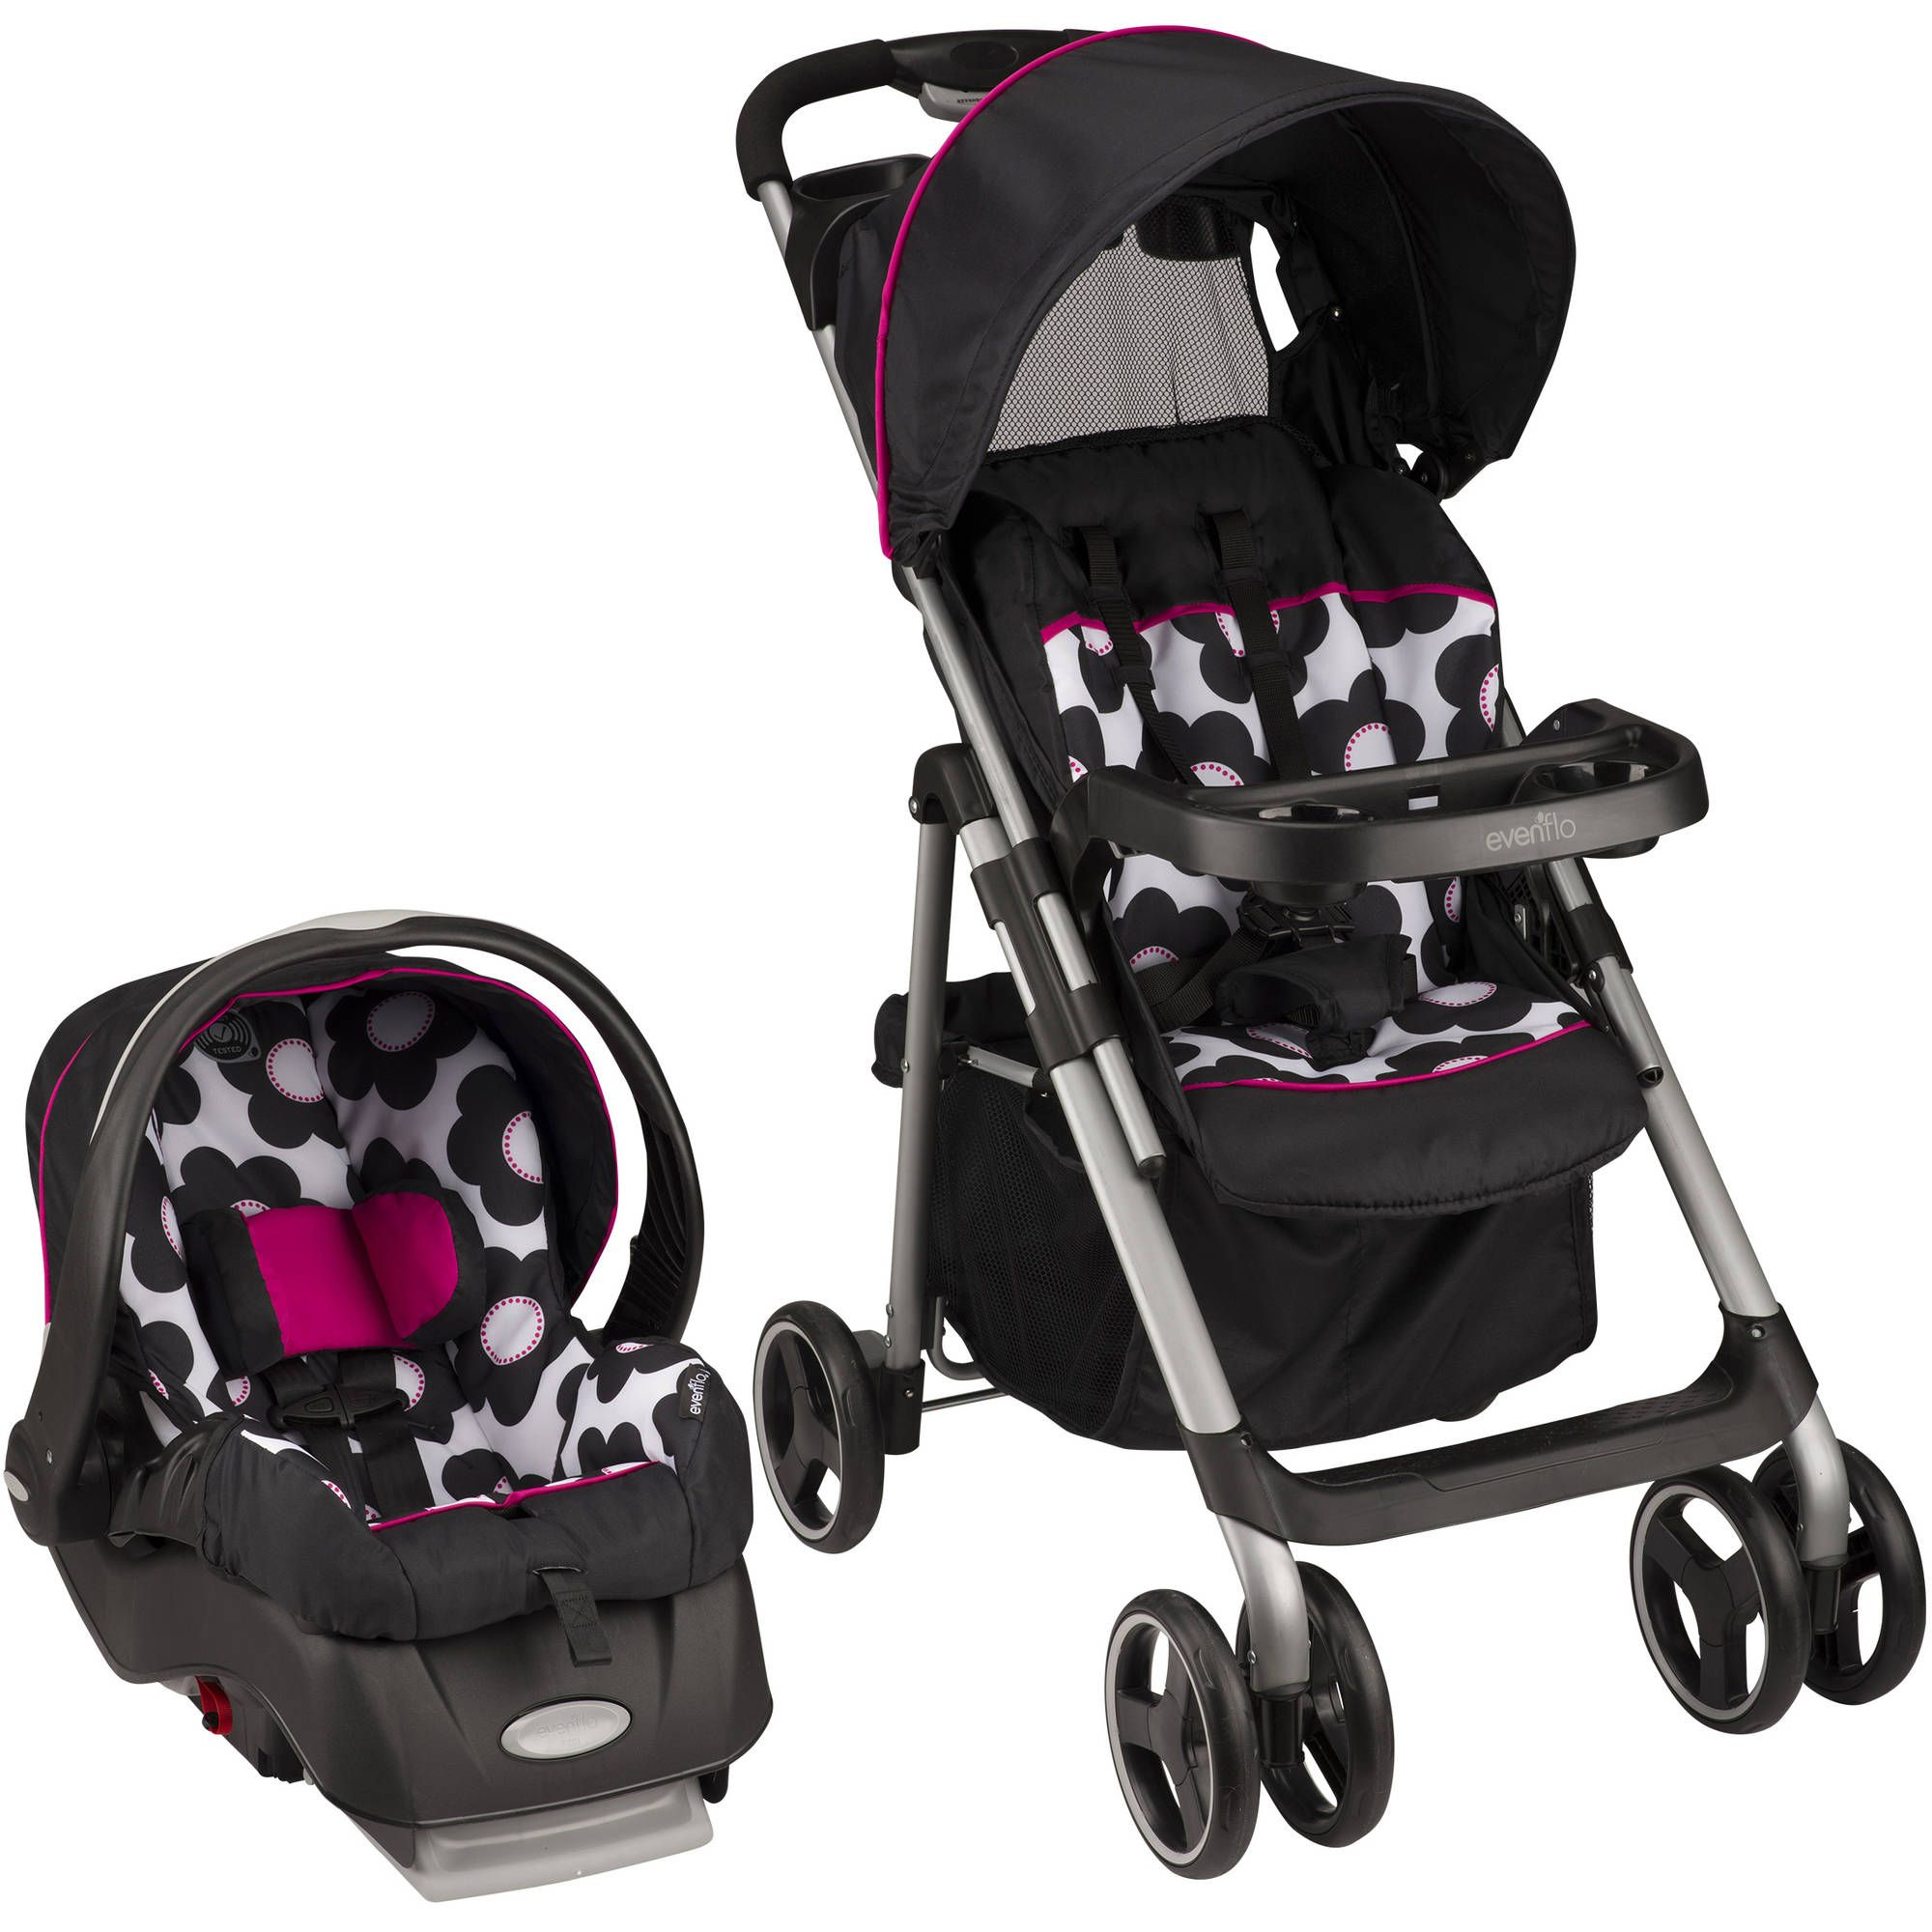 Baby Baby car seats, Baby strollers, Sports baby